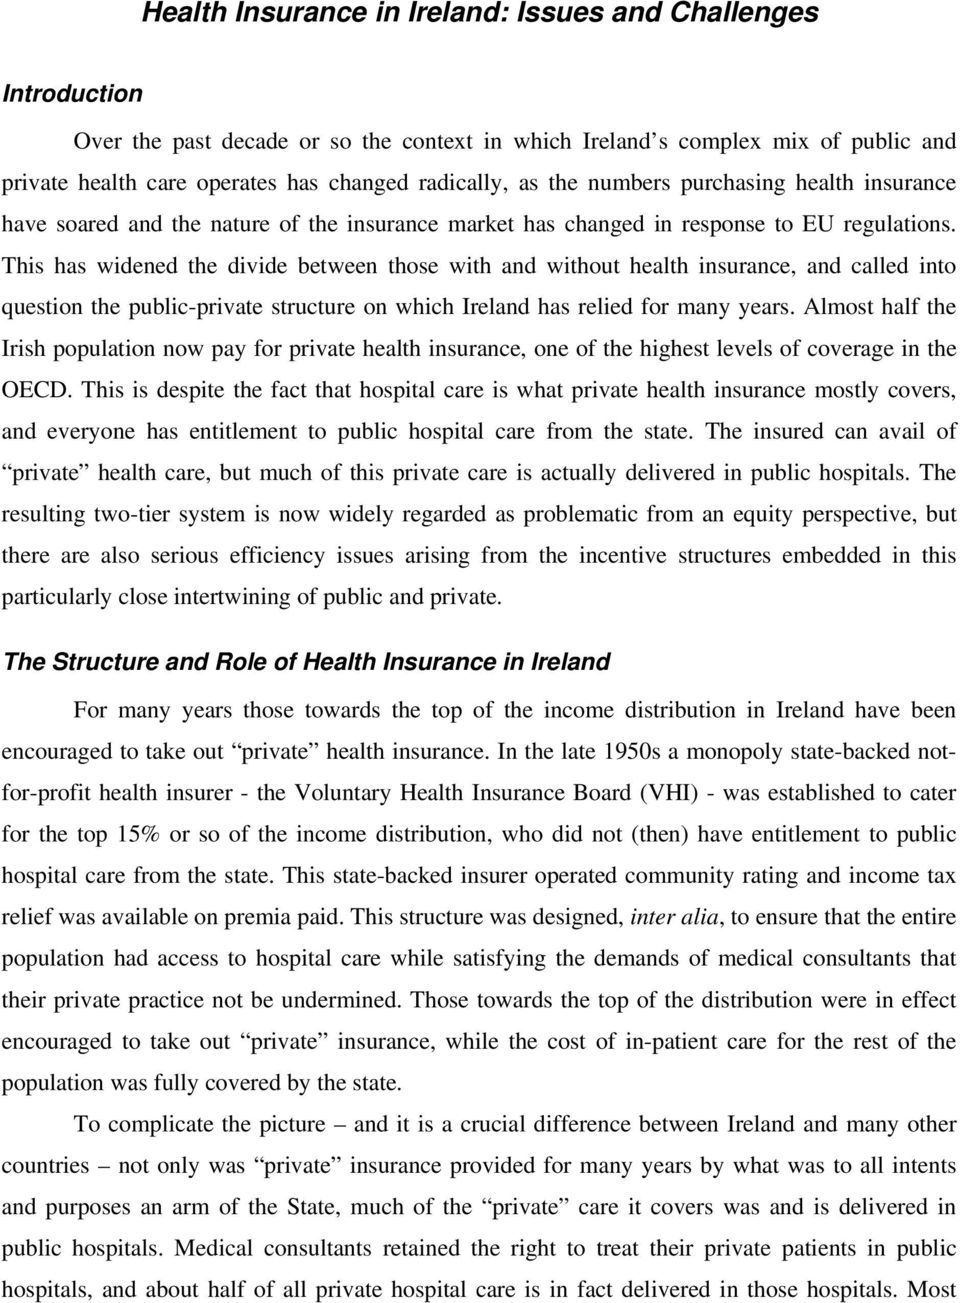 This has widened the divide between those with and without health insurance, and called into question the public-private structure on which Ireland has relied for many years.